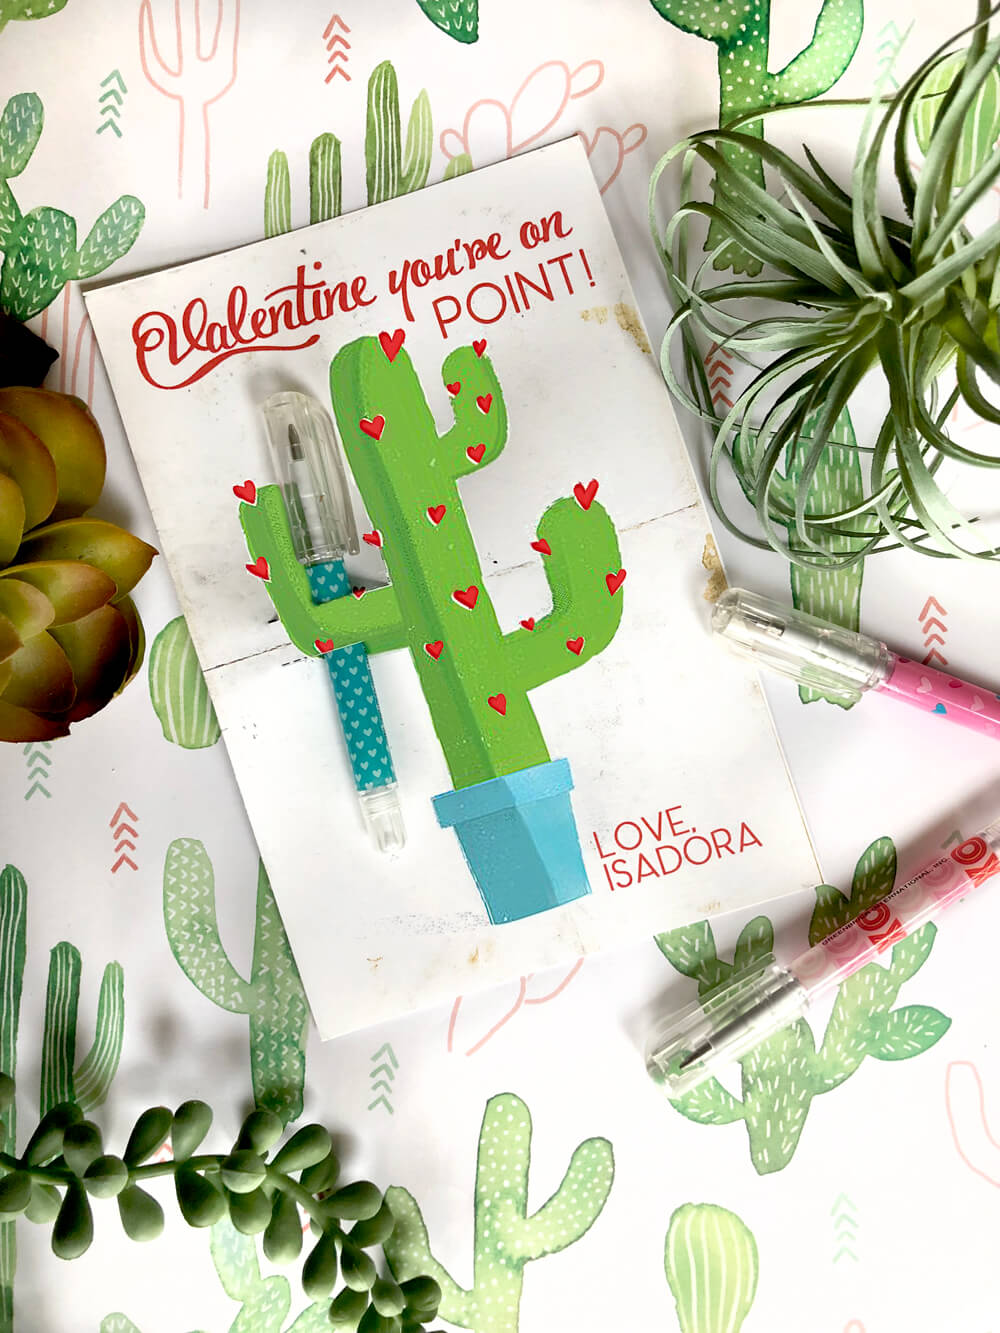 Cactus valentines day card with mini ball point pen